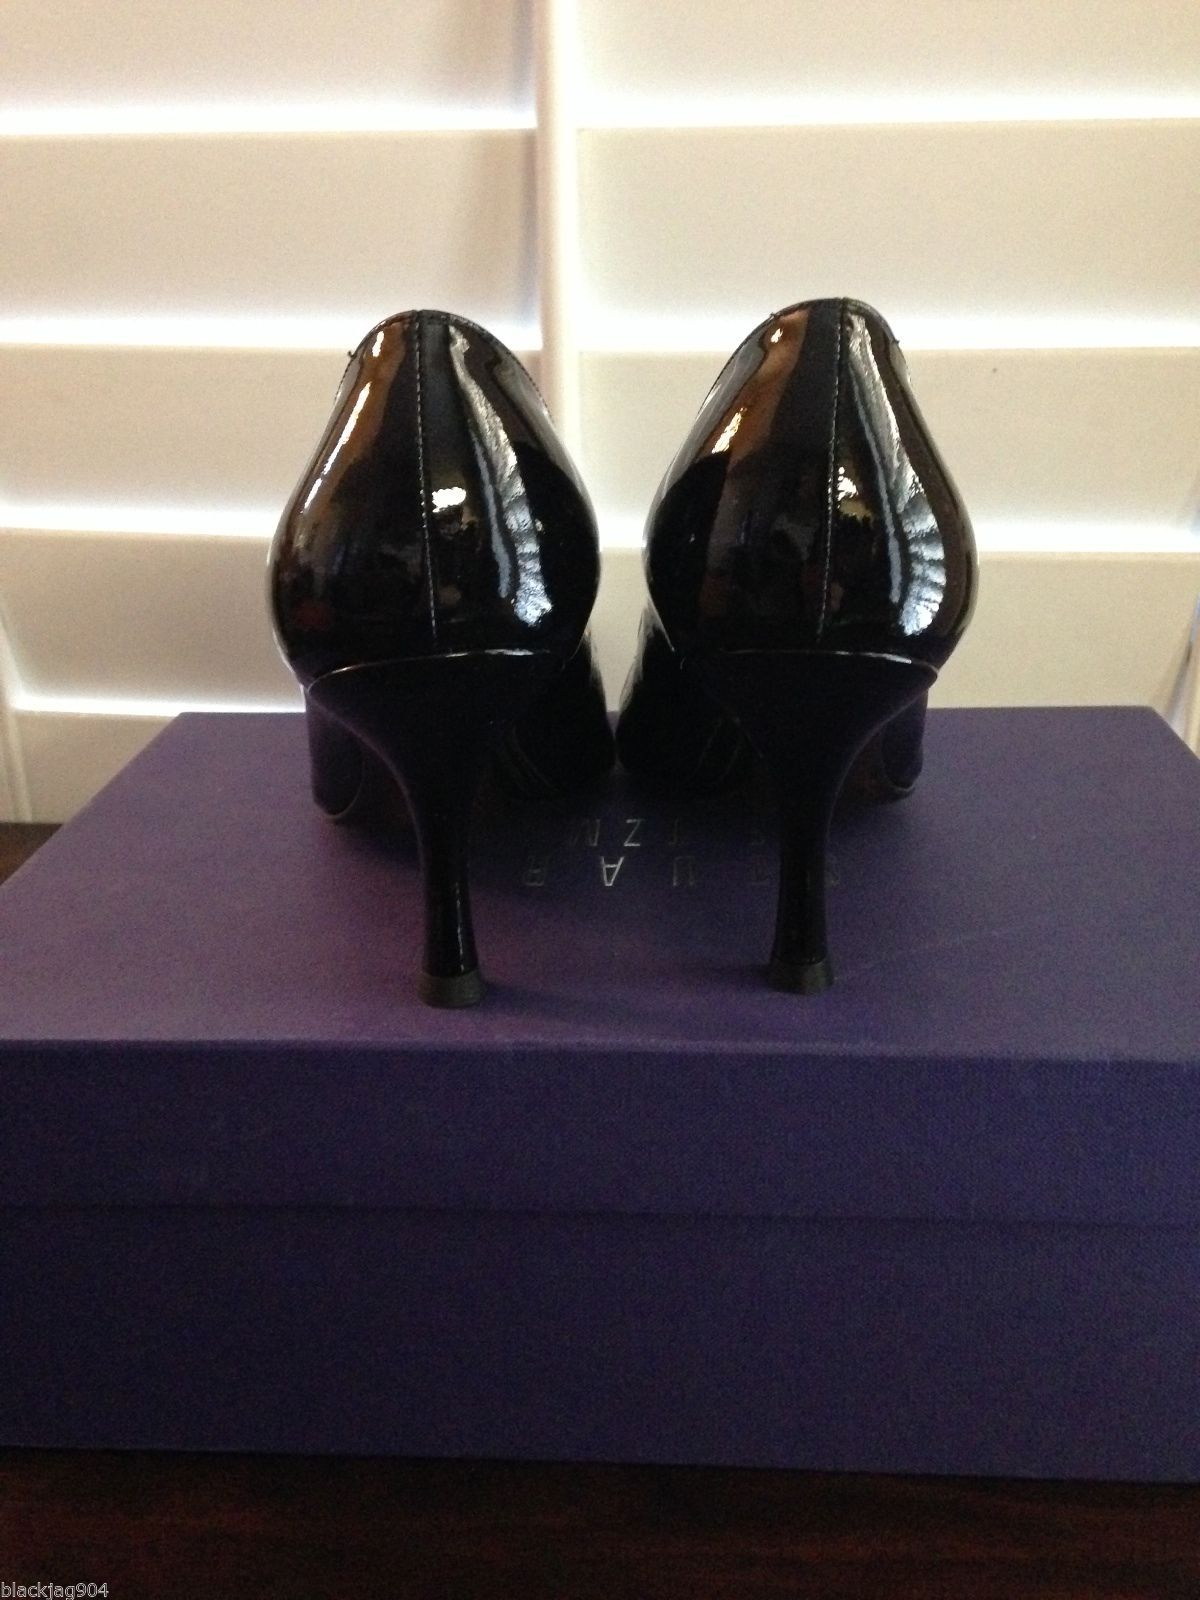 STUART WEITZMAN DAPHNE PEEP TOE PATENT LEATHER PUMP - BLACK - Size 6.5 - New